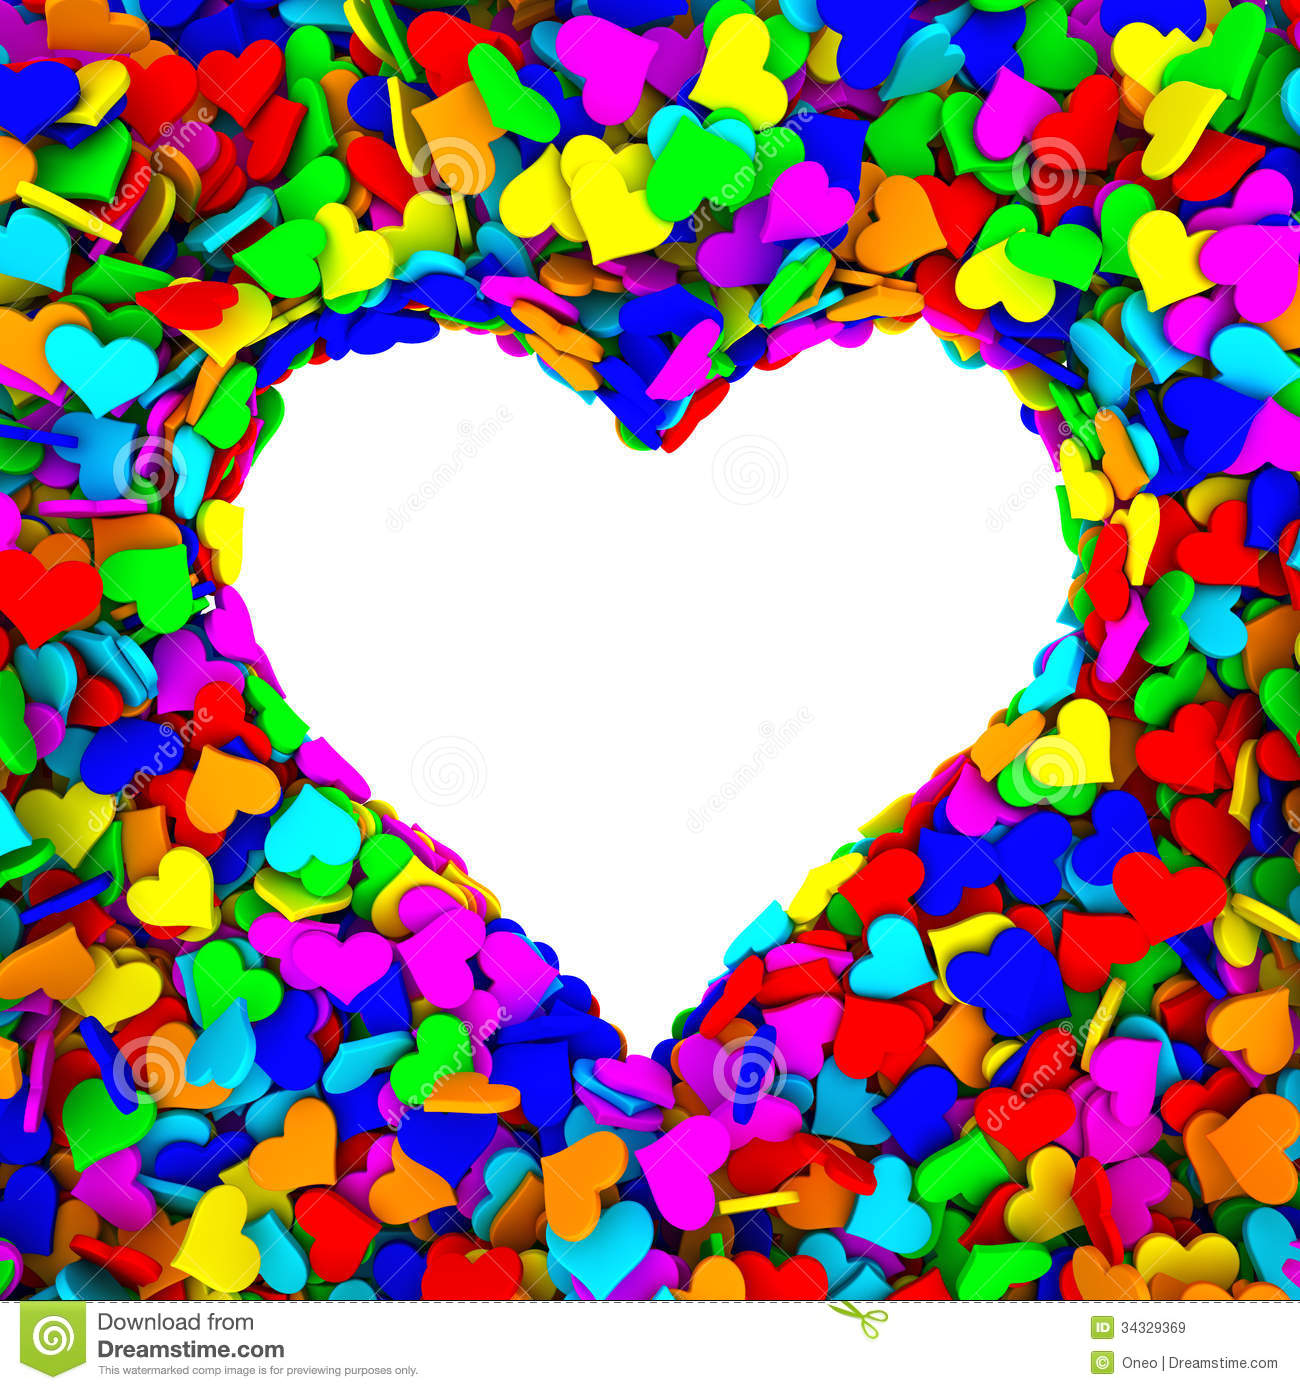 Blank frame of heart shape composed of many small colorful hearts blank frame of heart shape composed of many small colorful hearts thecheapjerseys Gallery